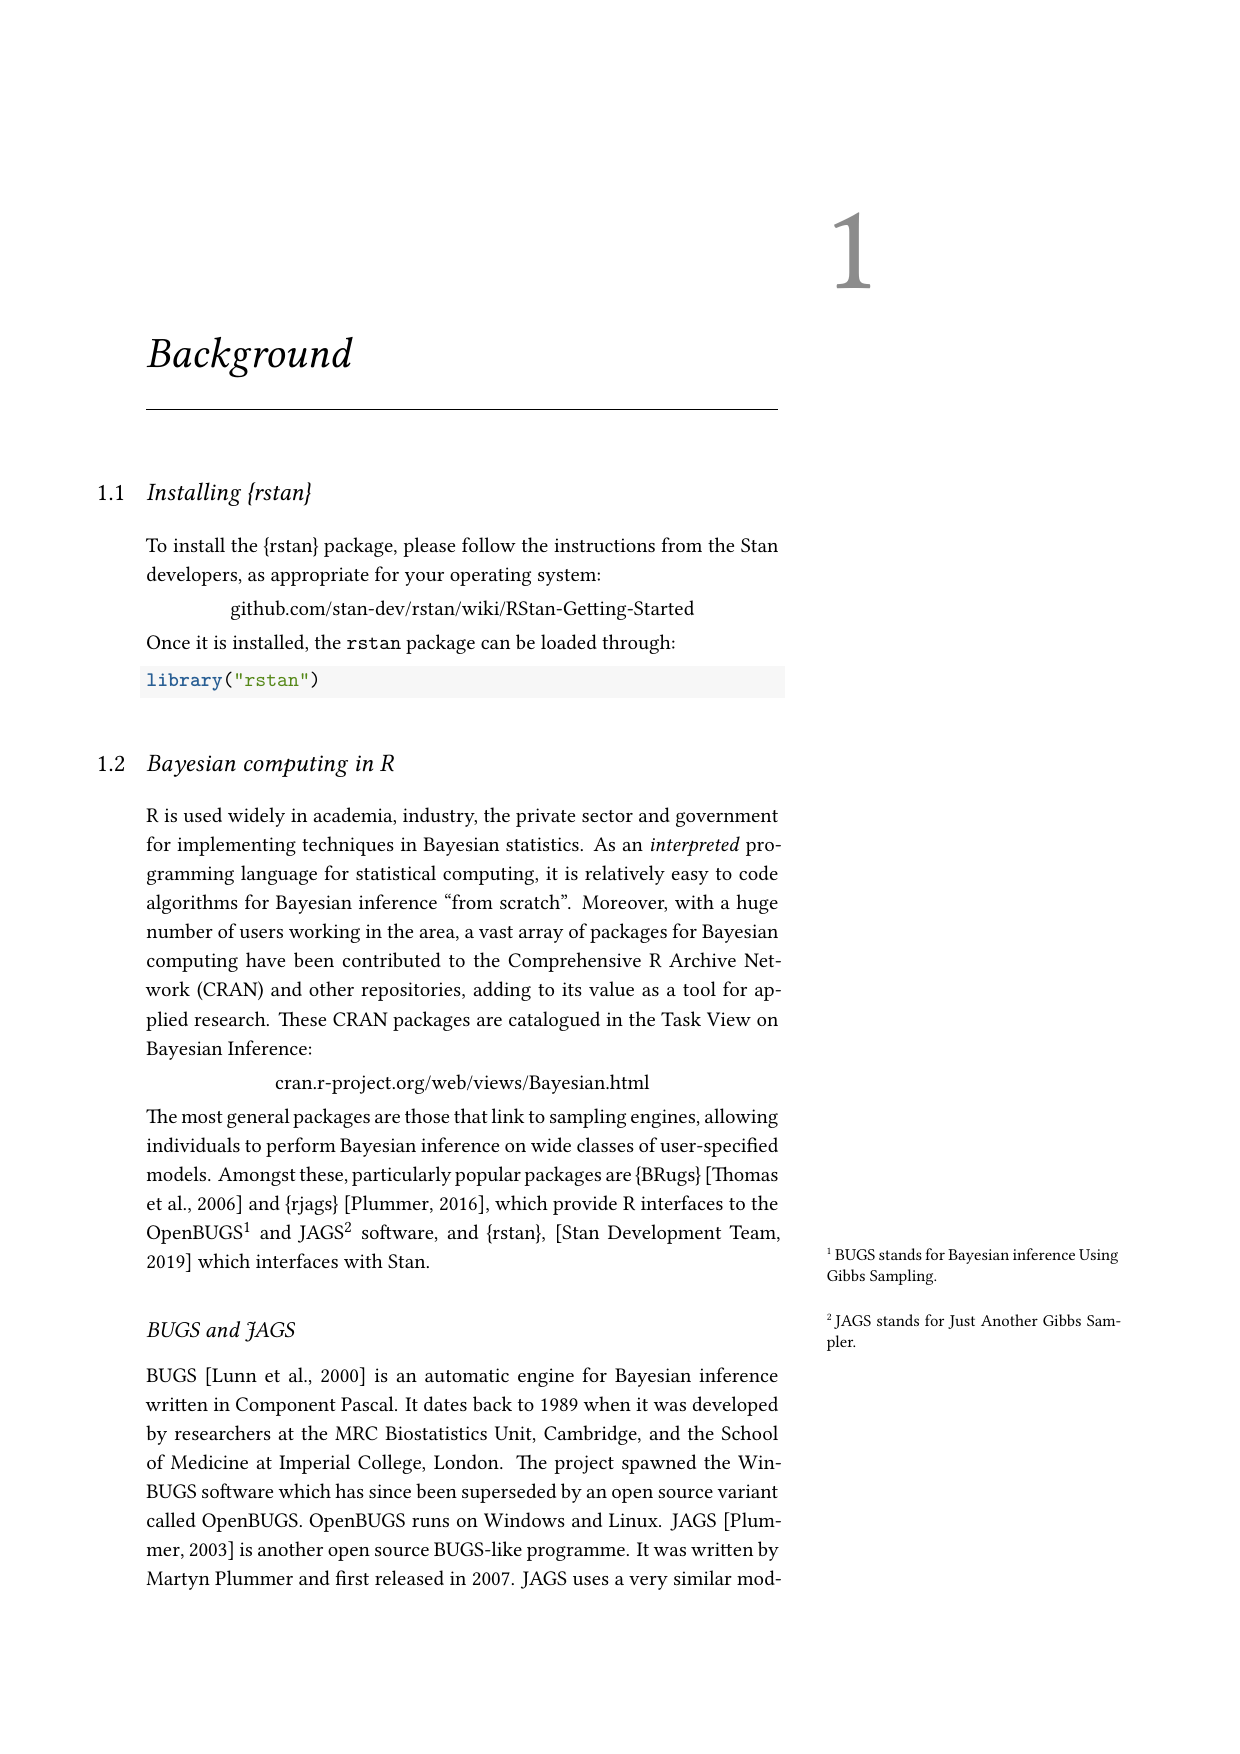 Example course material for 'Introduction to Bayesian Inference using RStan